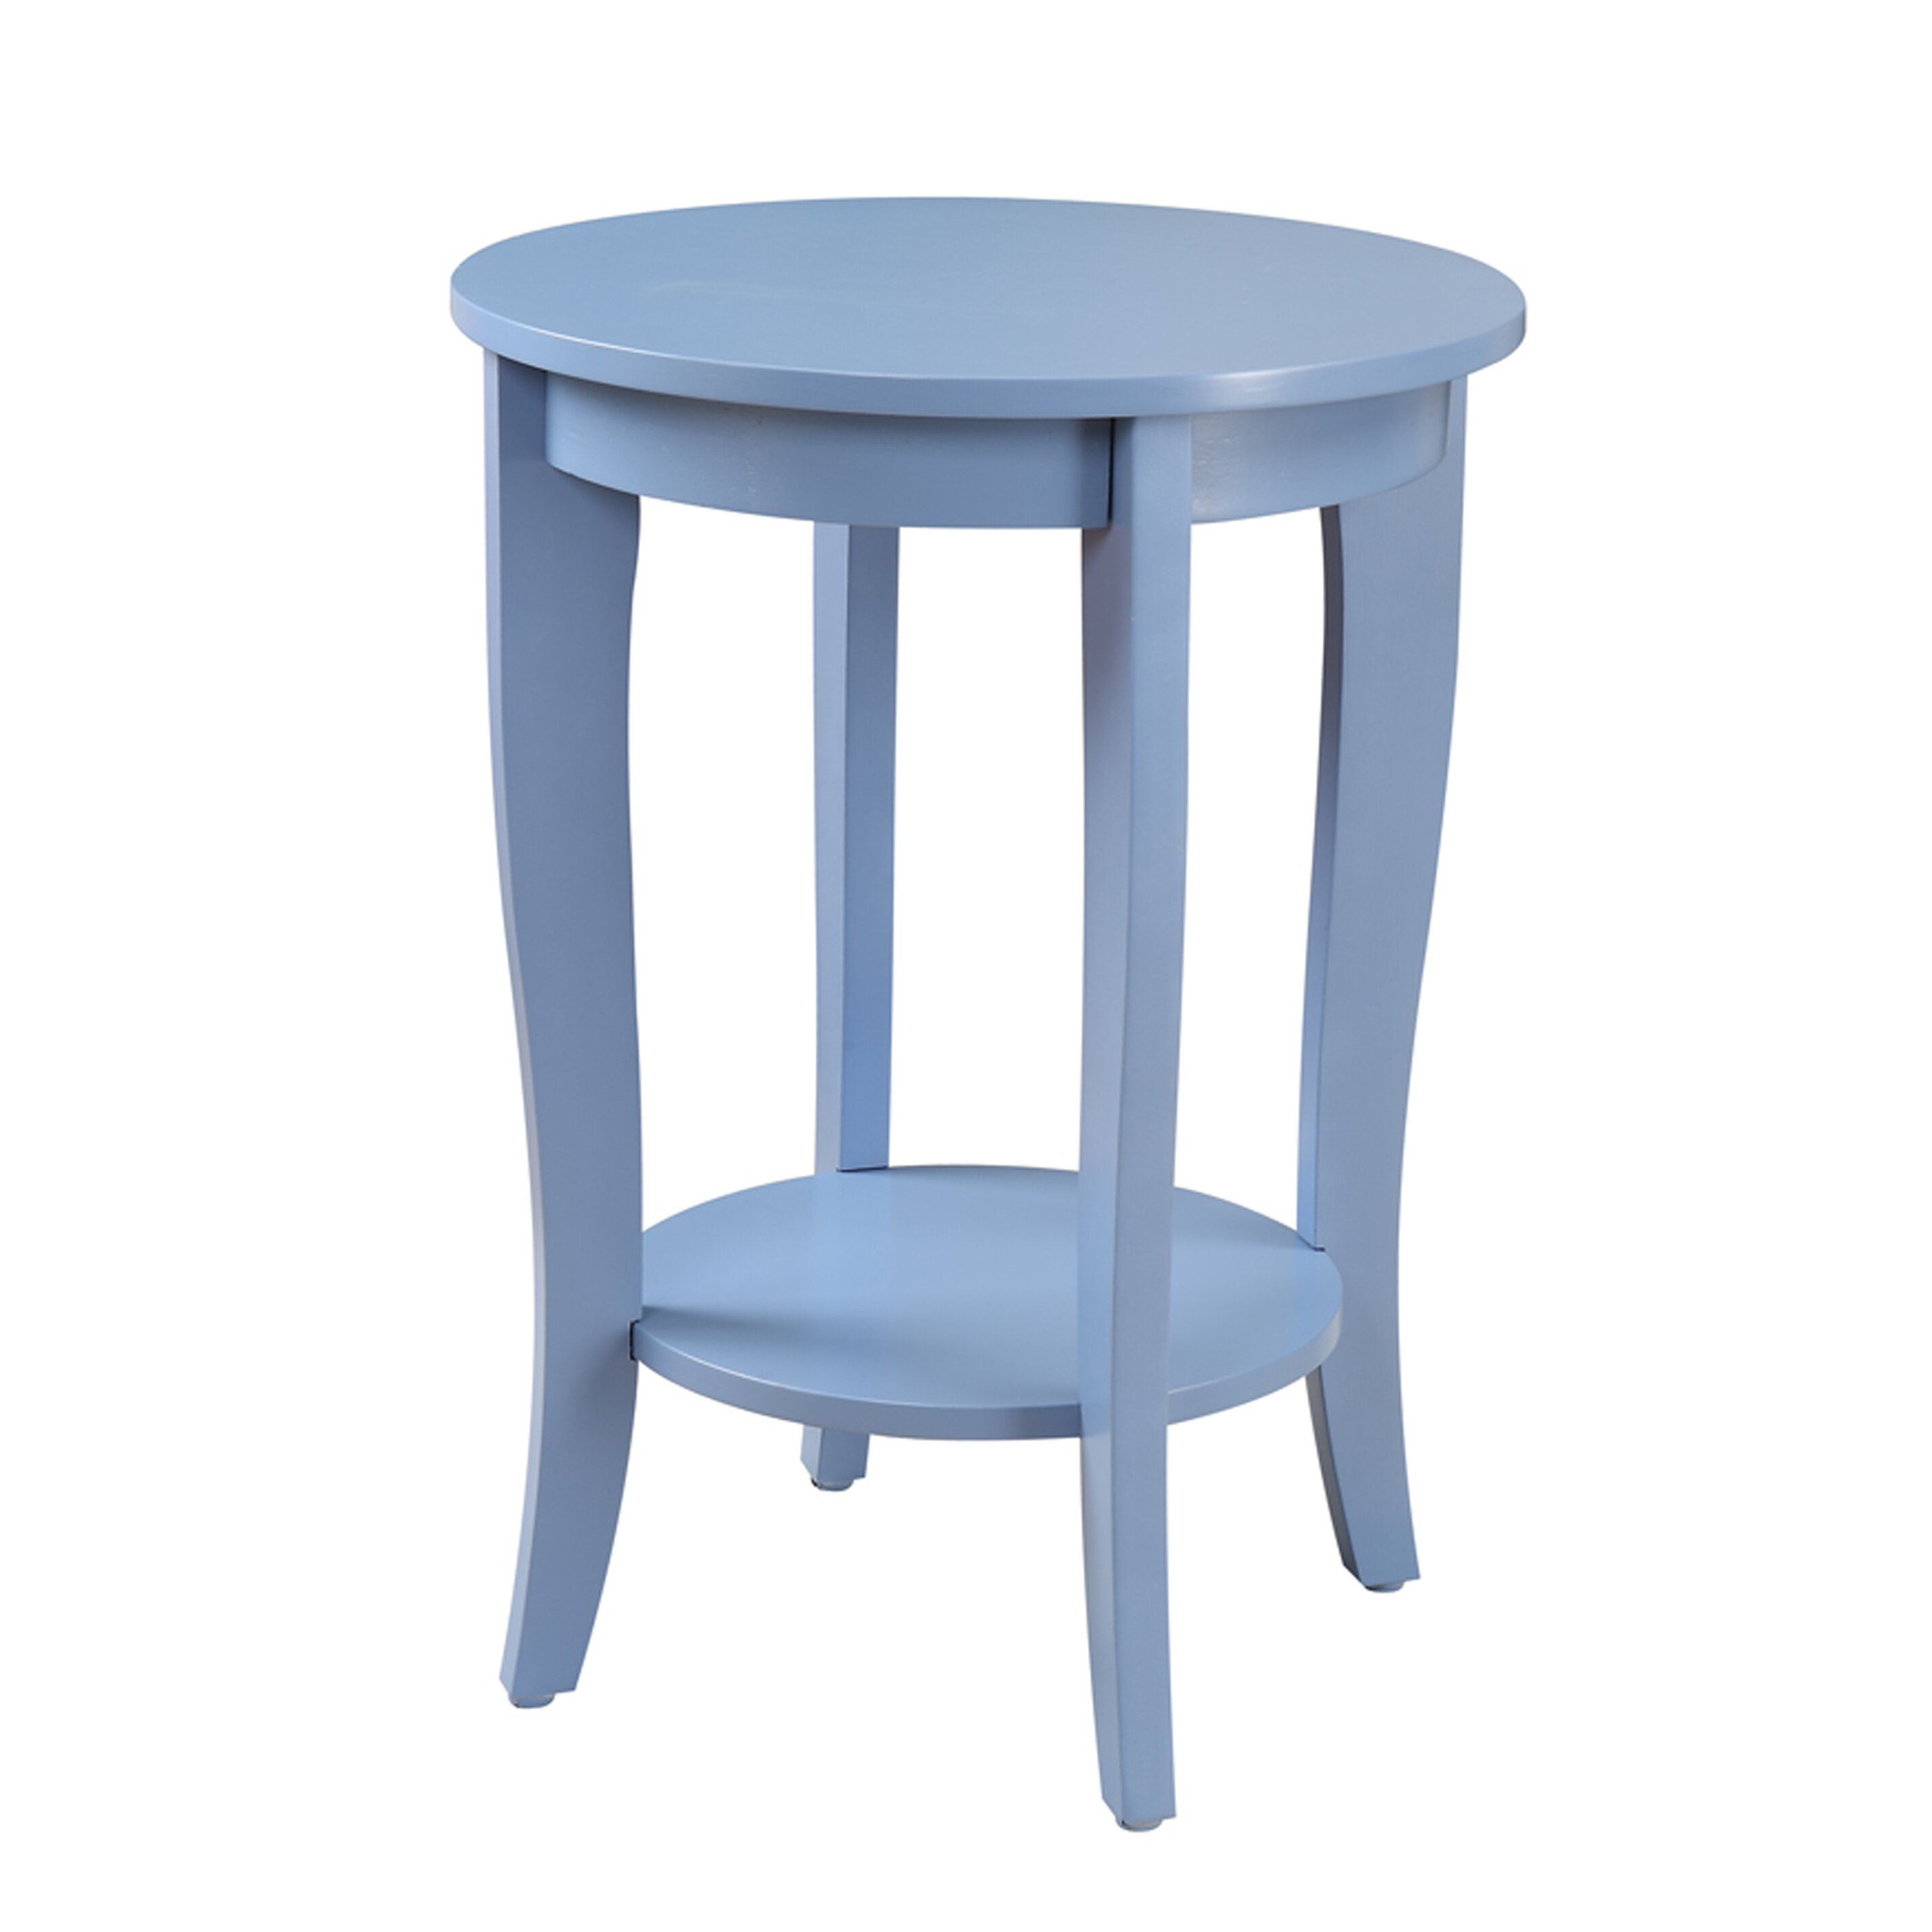 Round End Table : ... Concepts American Heritage Round End Table & Reviews  Wayfair